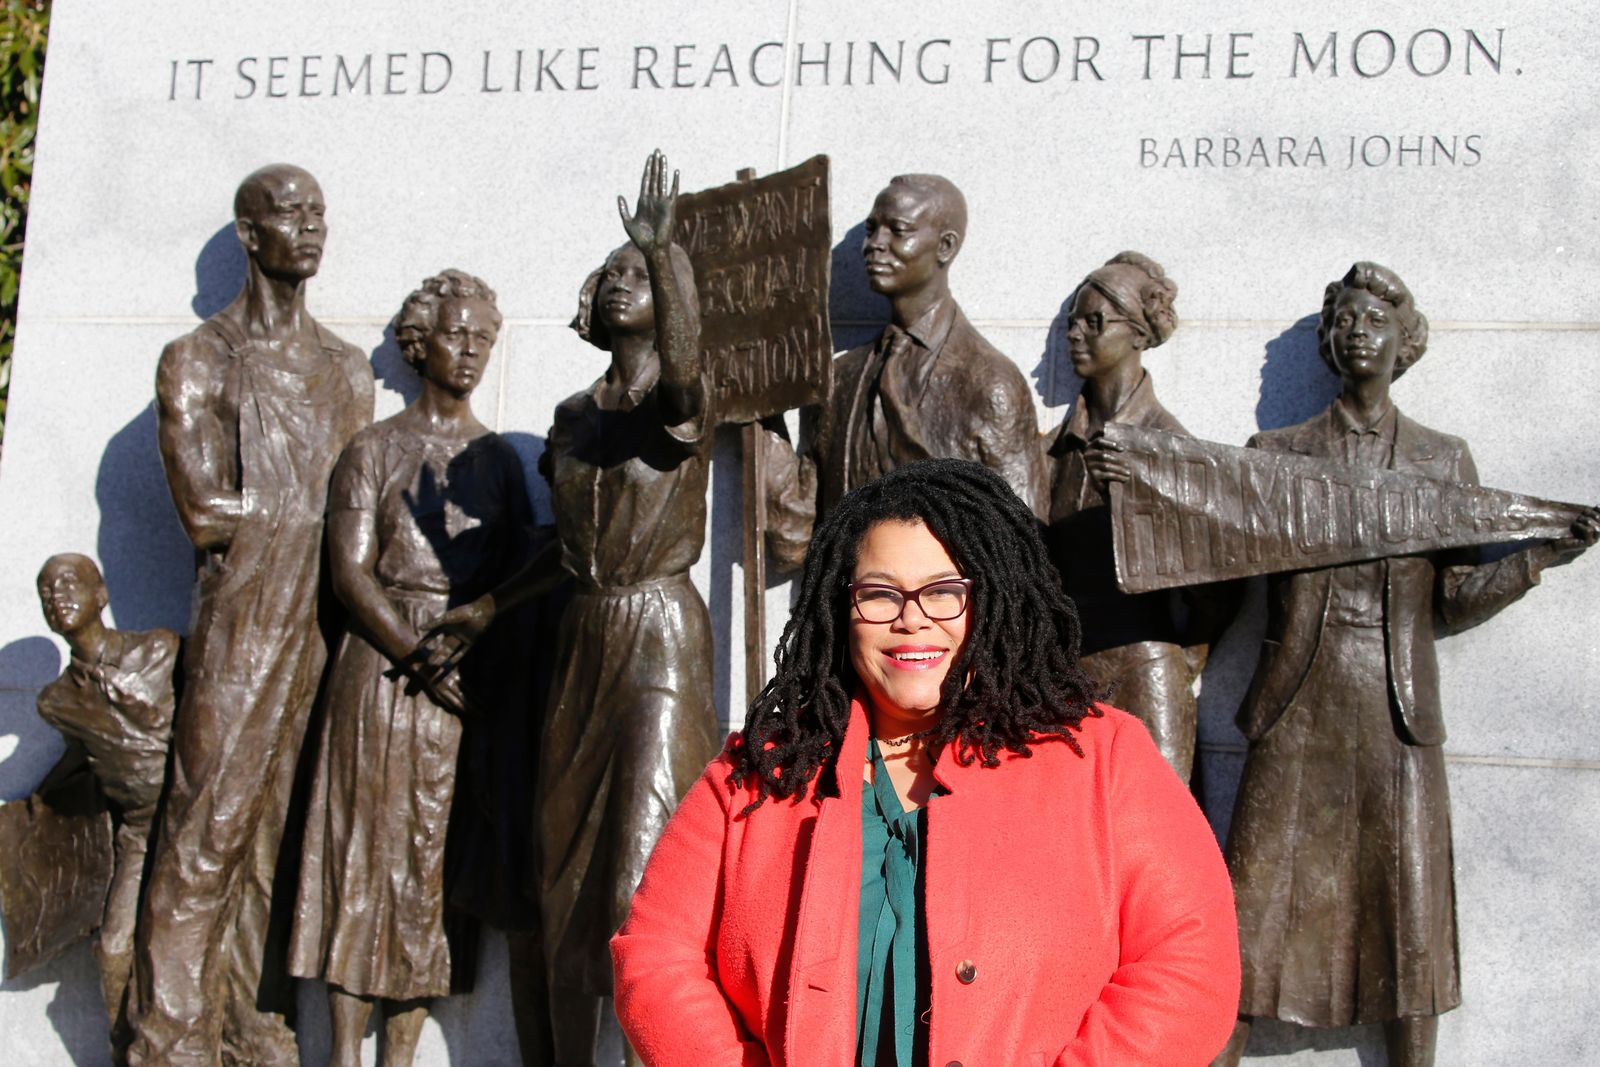 Wake Forest alumni Palinda Carrington poses in front of the Virginia Civil Rights Monument on Capitol Square in Richmond, Va., Sunday, Dec. 15, 2019. (AP Photo/Steve Helber)